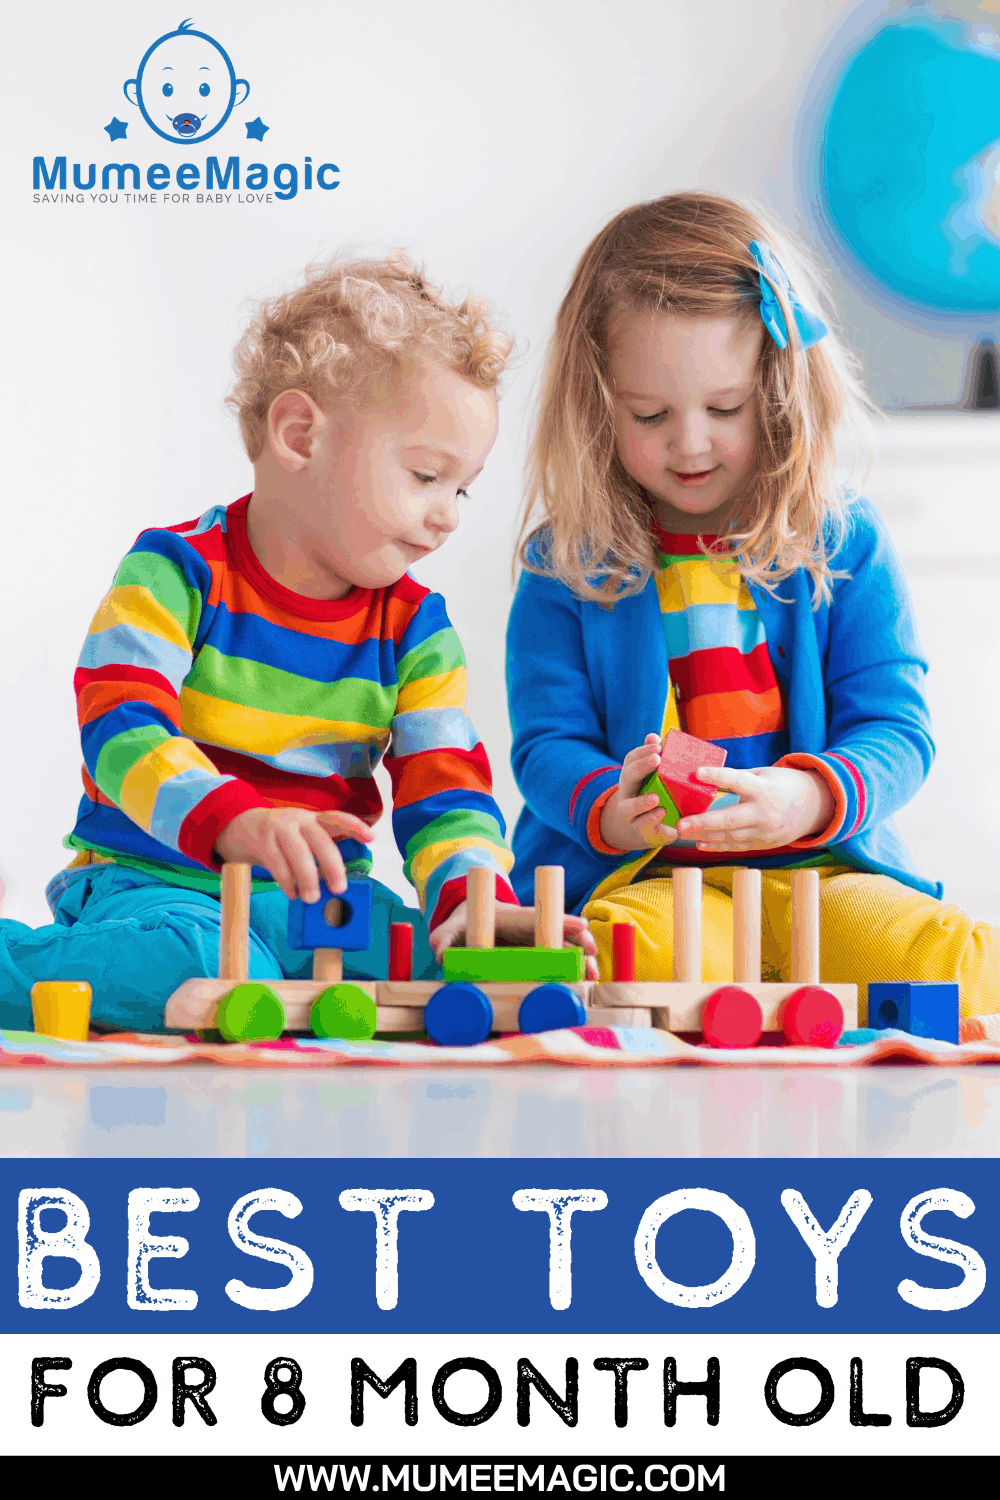 Toys for 8 months old